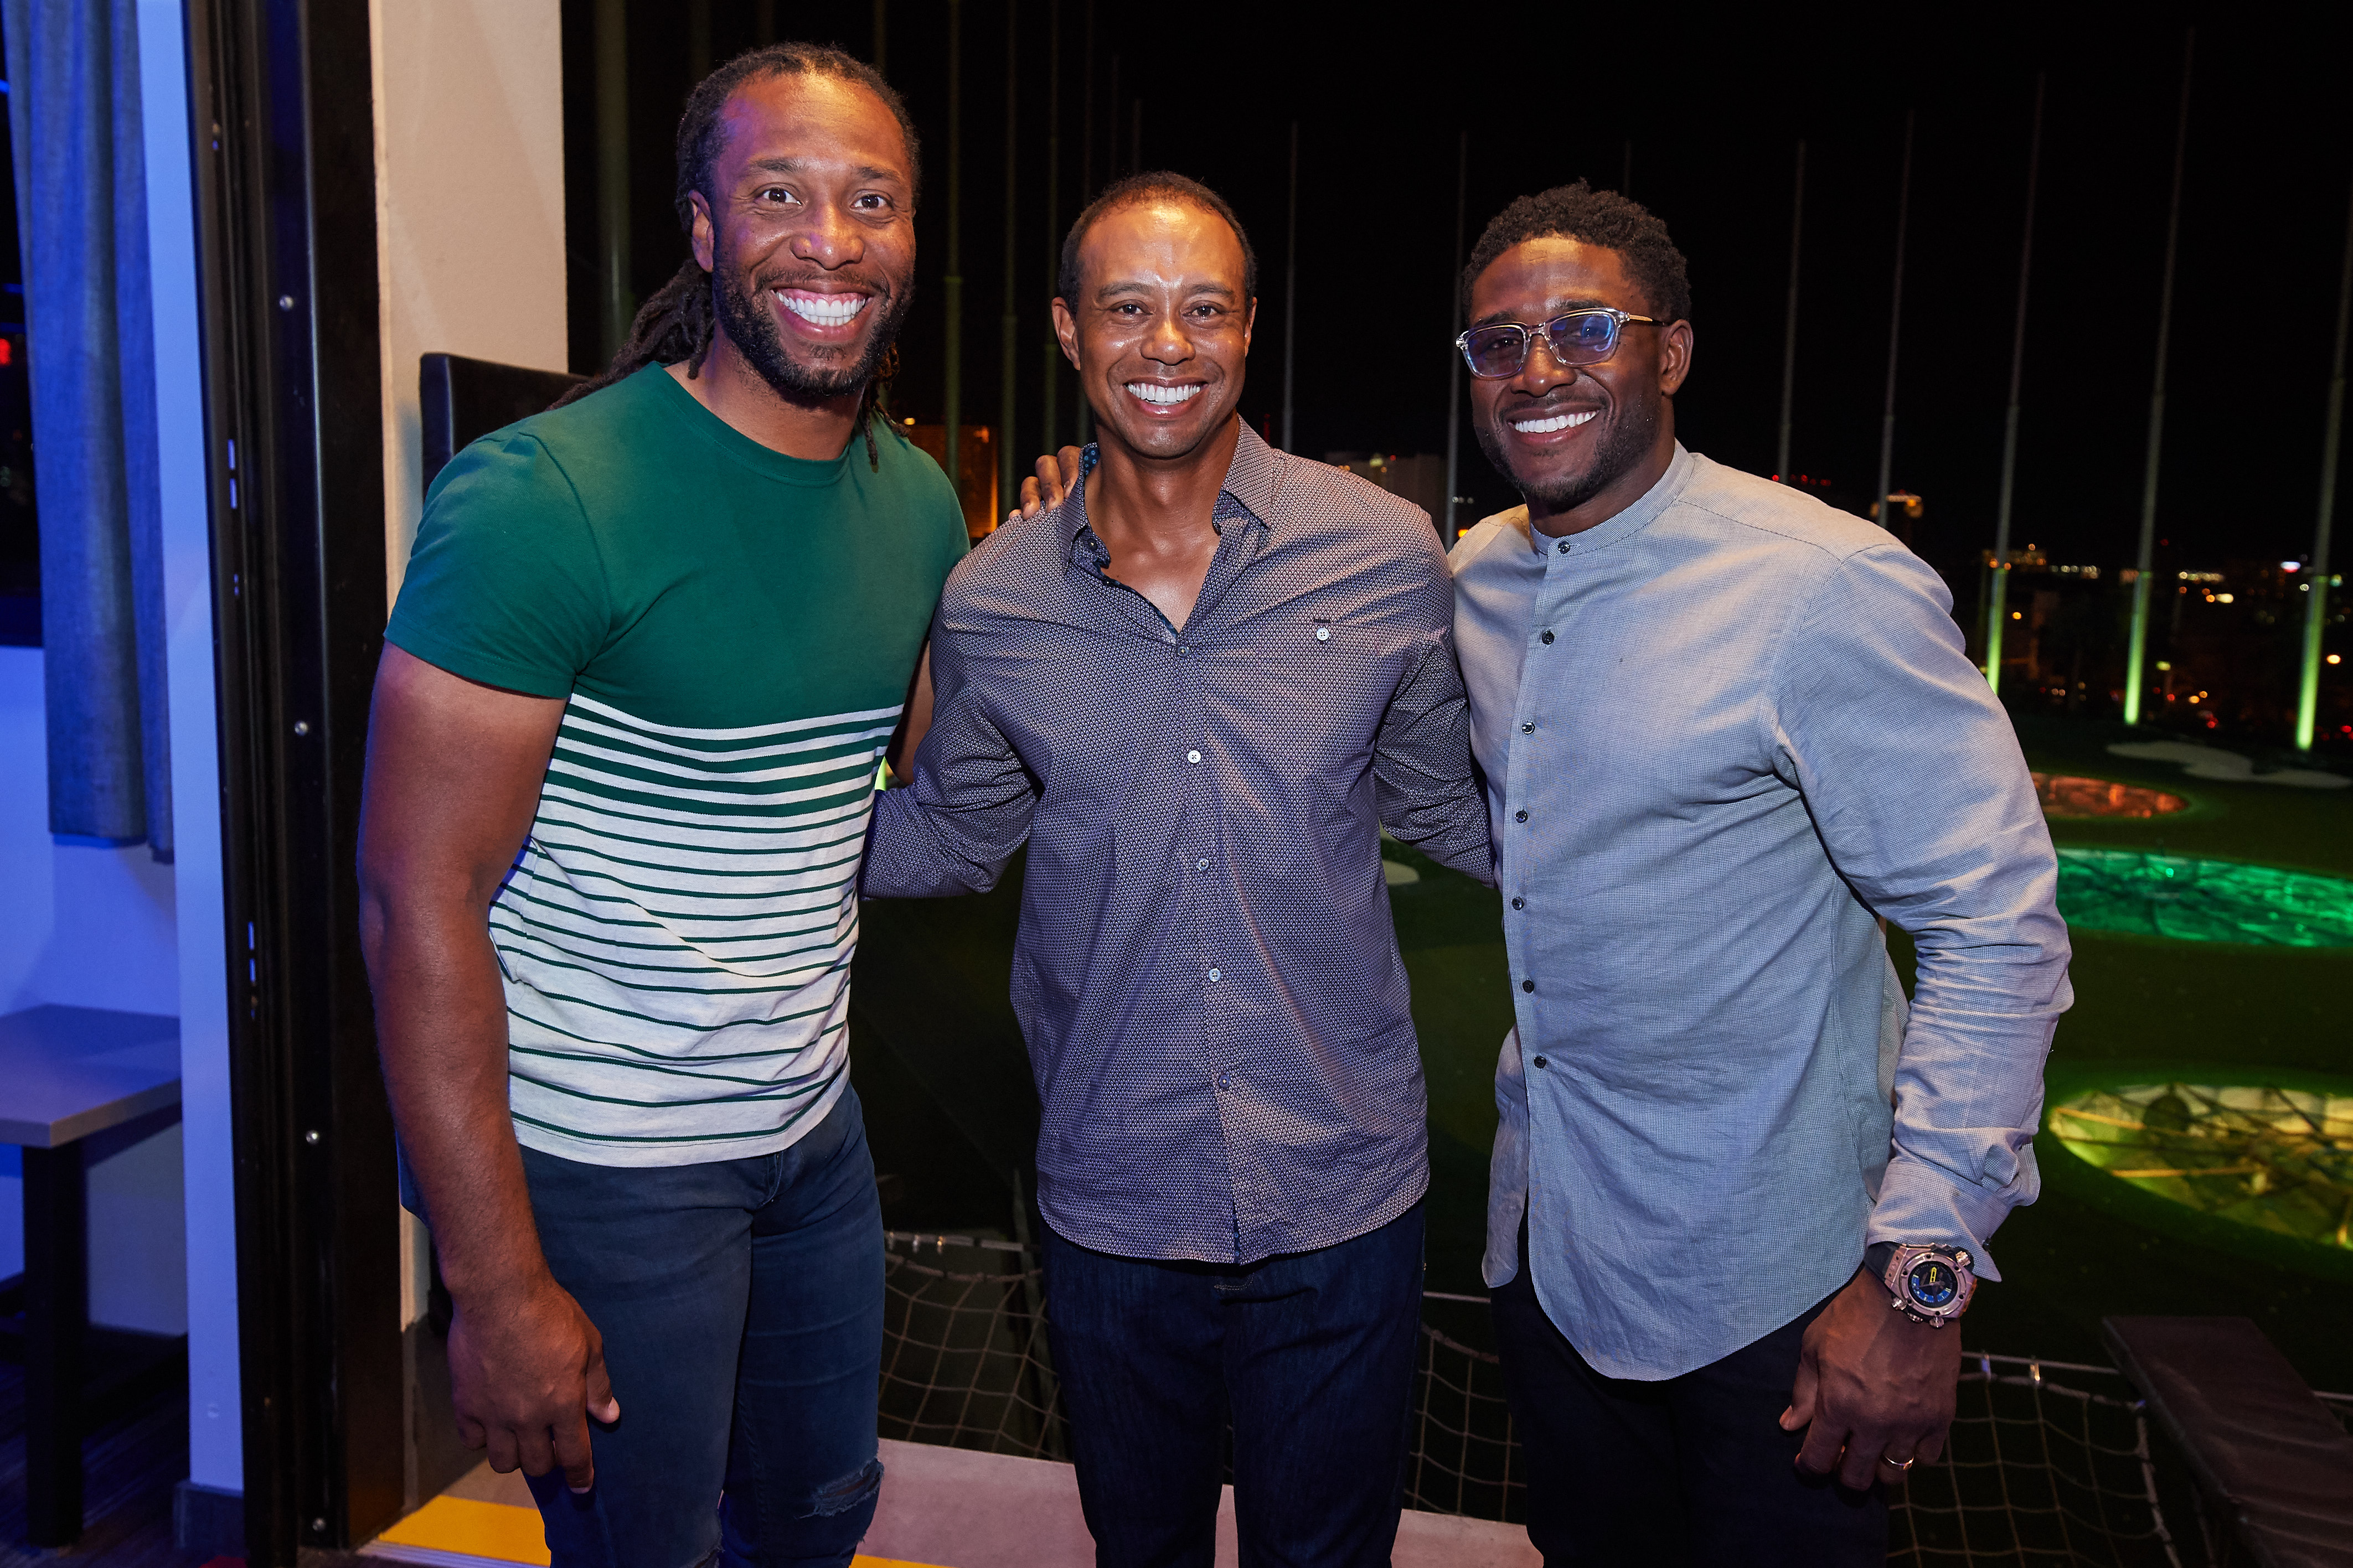 Tiger Woods poses with Larry Fitzgerald and Reggie Bush at Topgolf